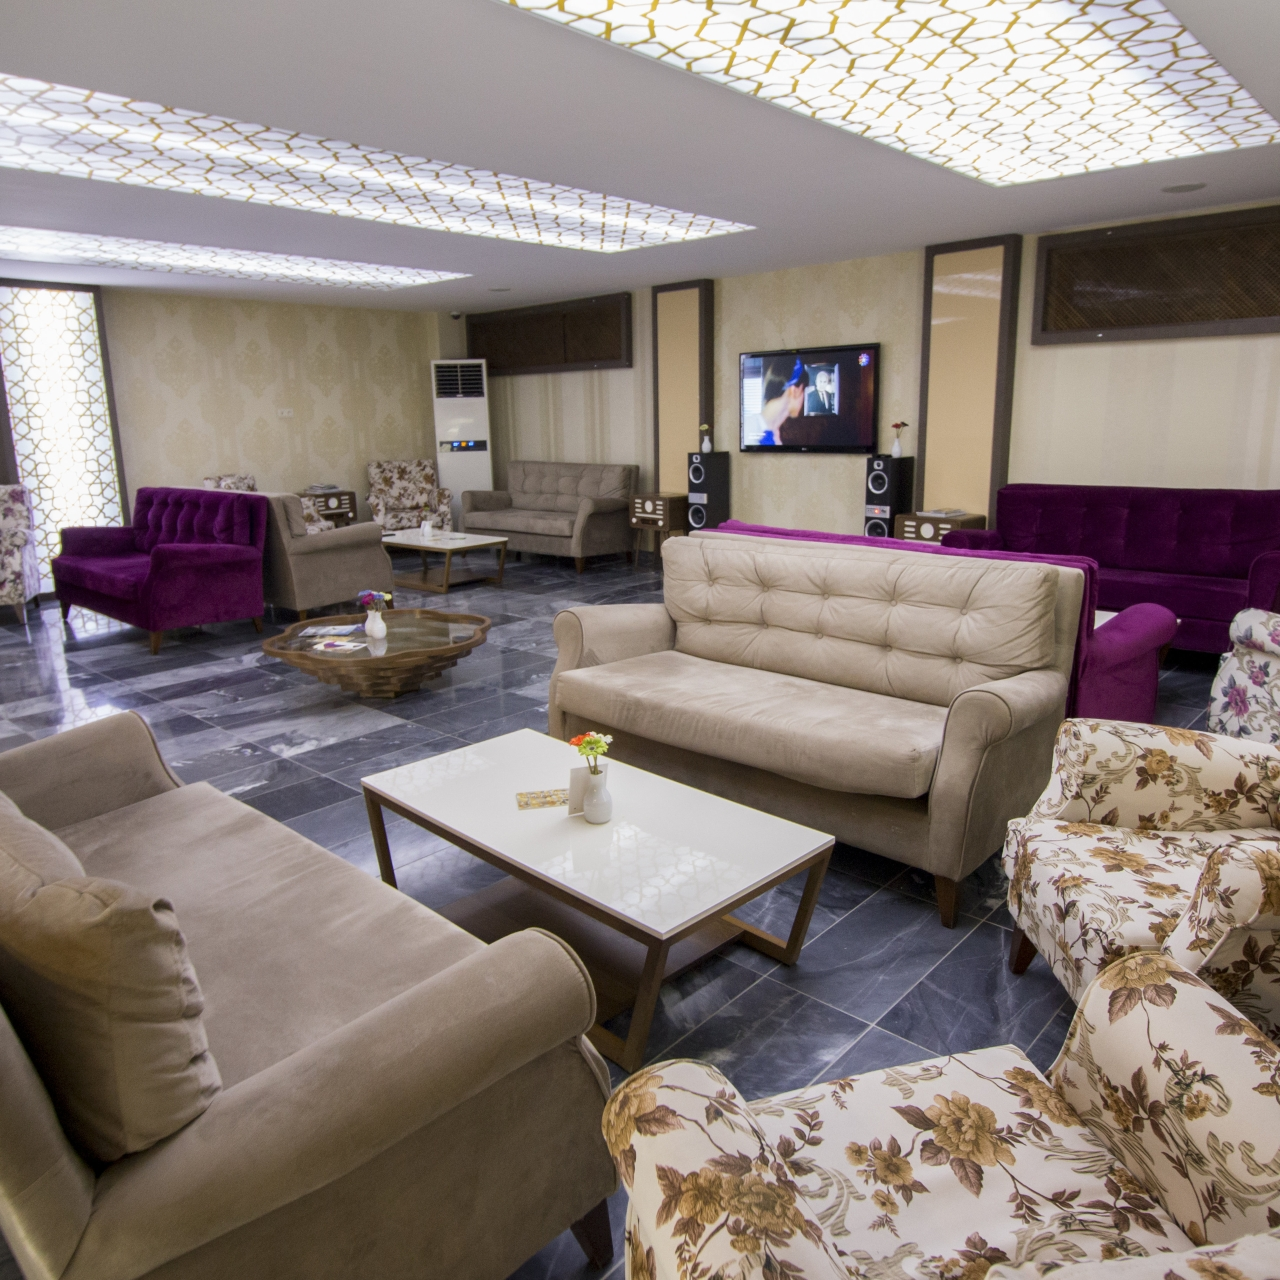 Couchtisch Han Hotel Business Han Turkey At Hrs With Free Services